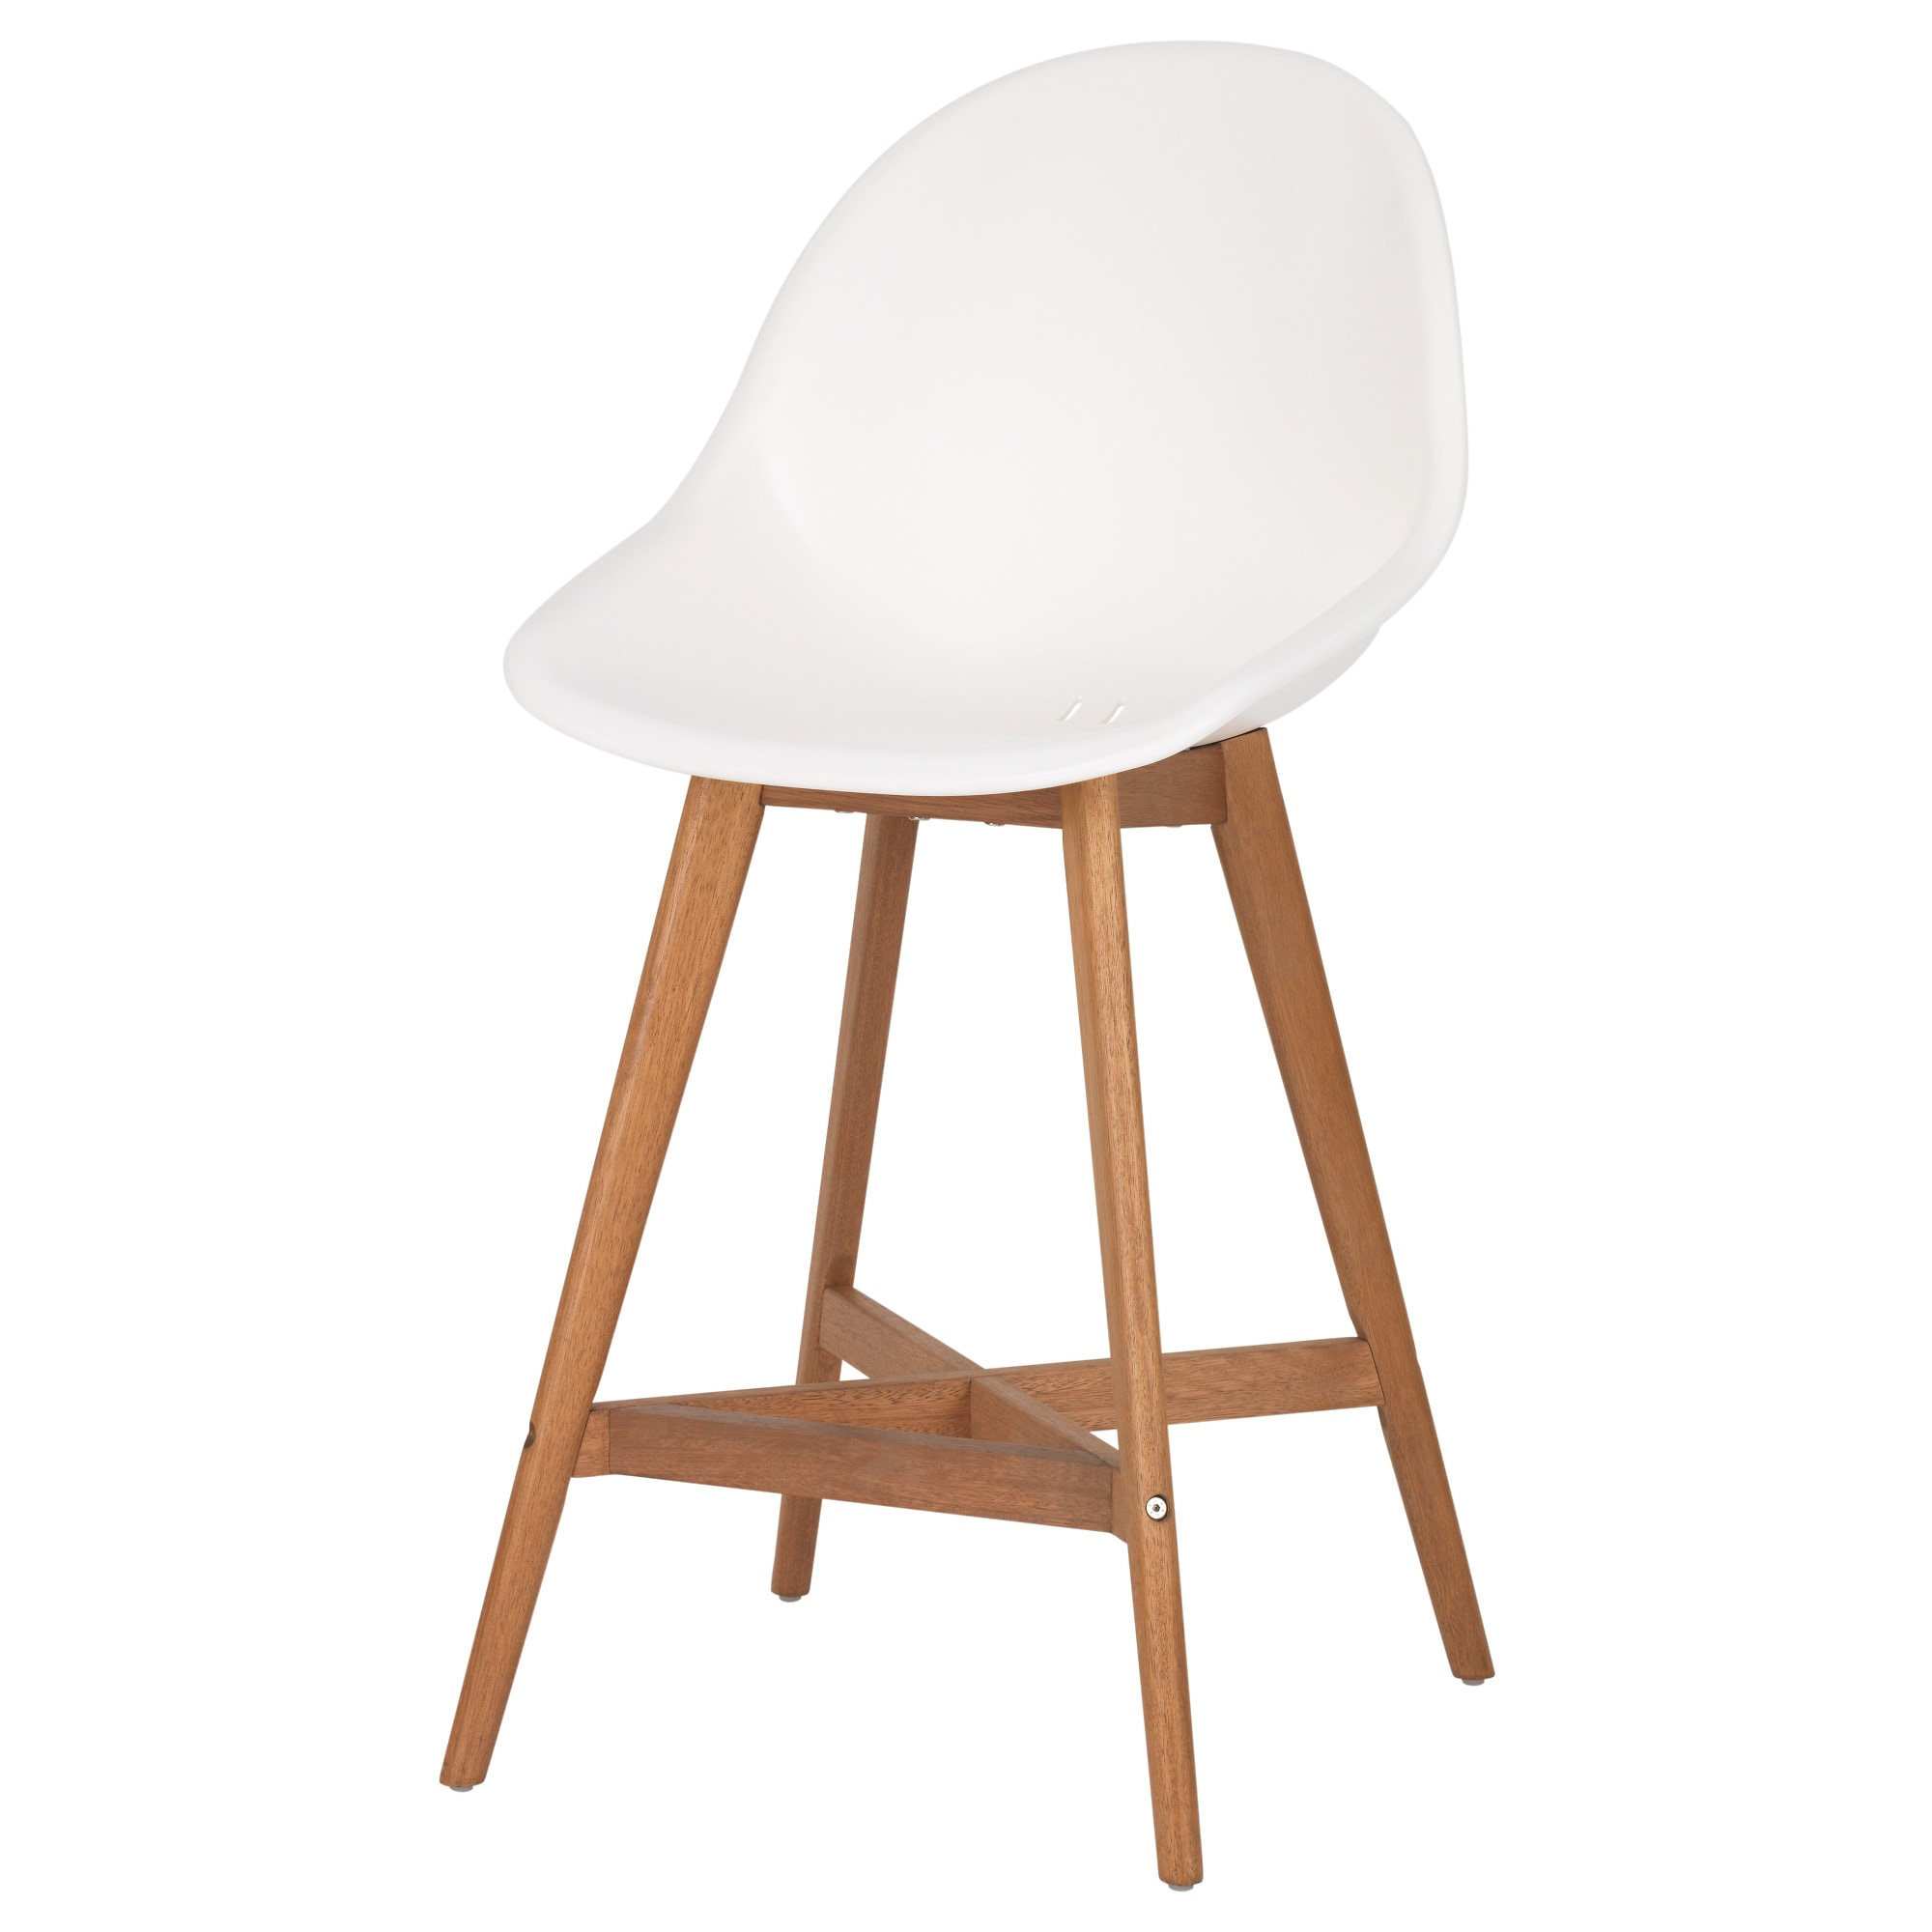 Luxury Ikea Wooden High Chair Rtty1 Com Rtty1 Com